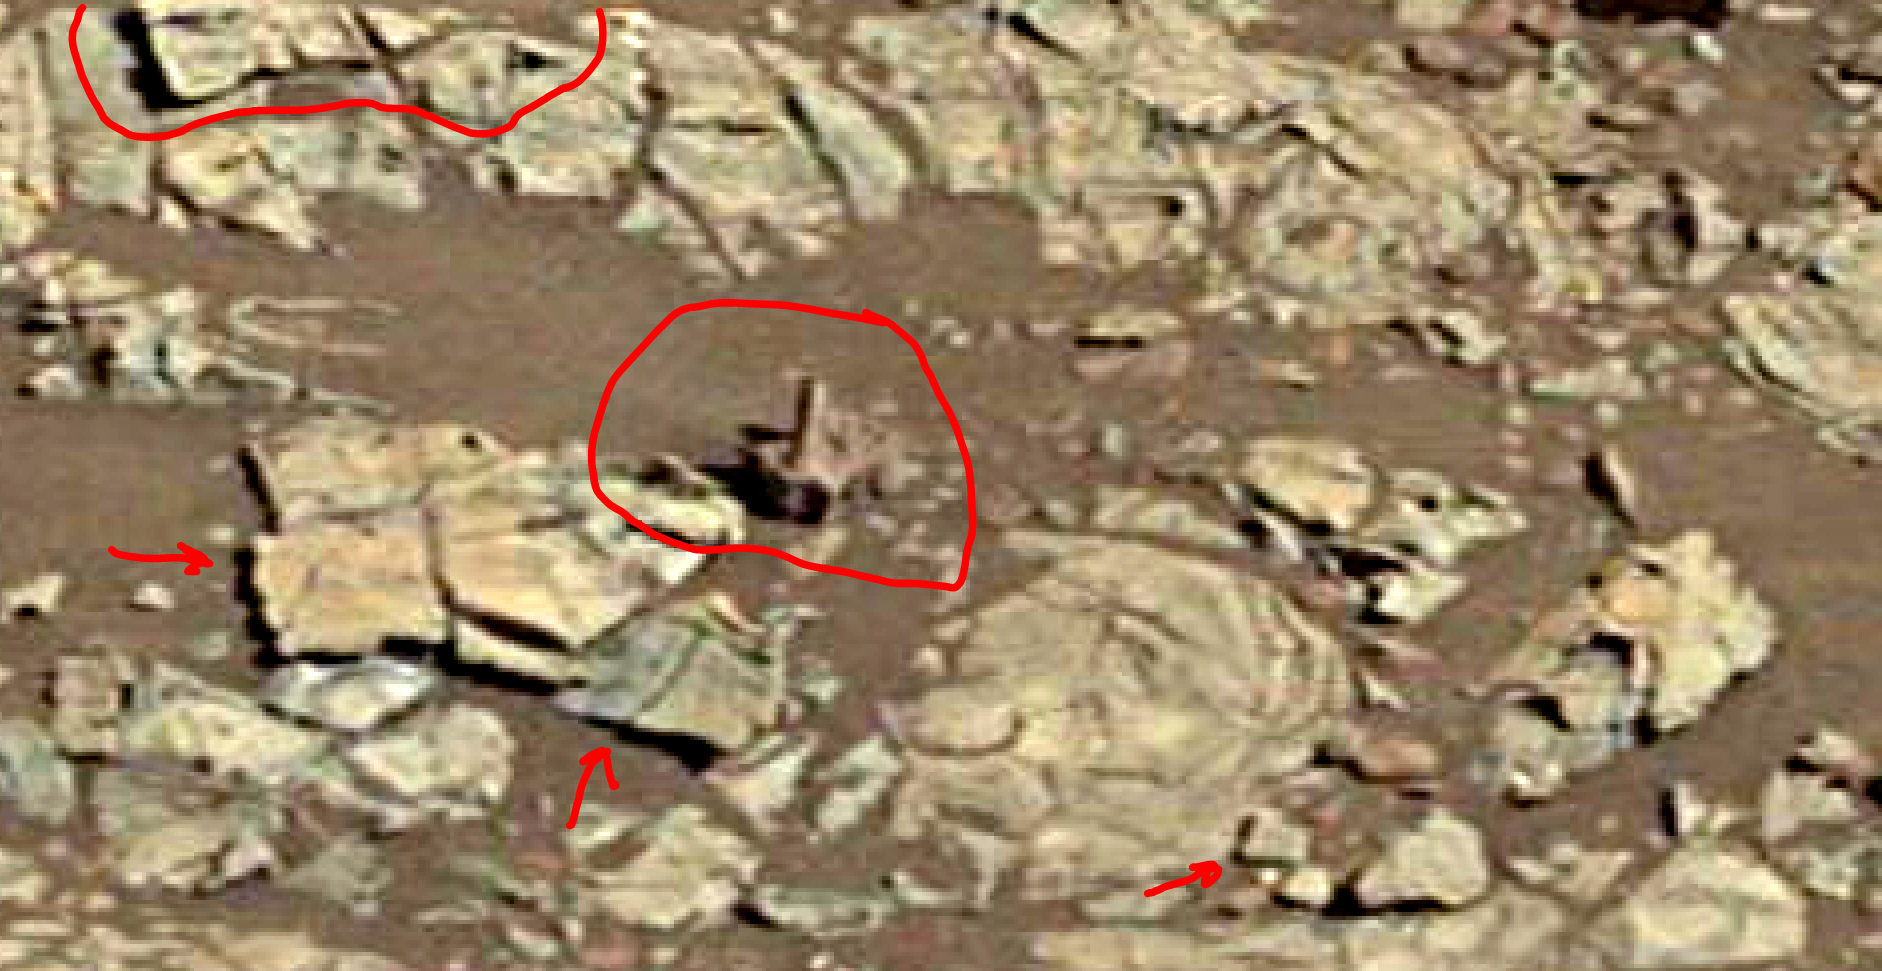 See Photos With 2018 Photos: Mars Sol 1922 – Composite View & Anomalies